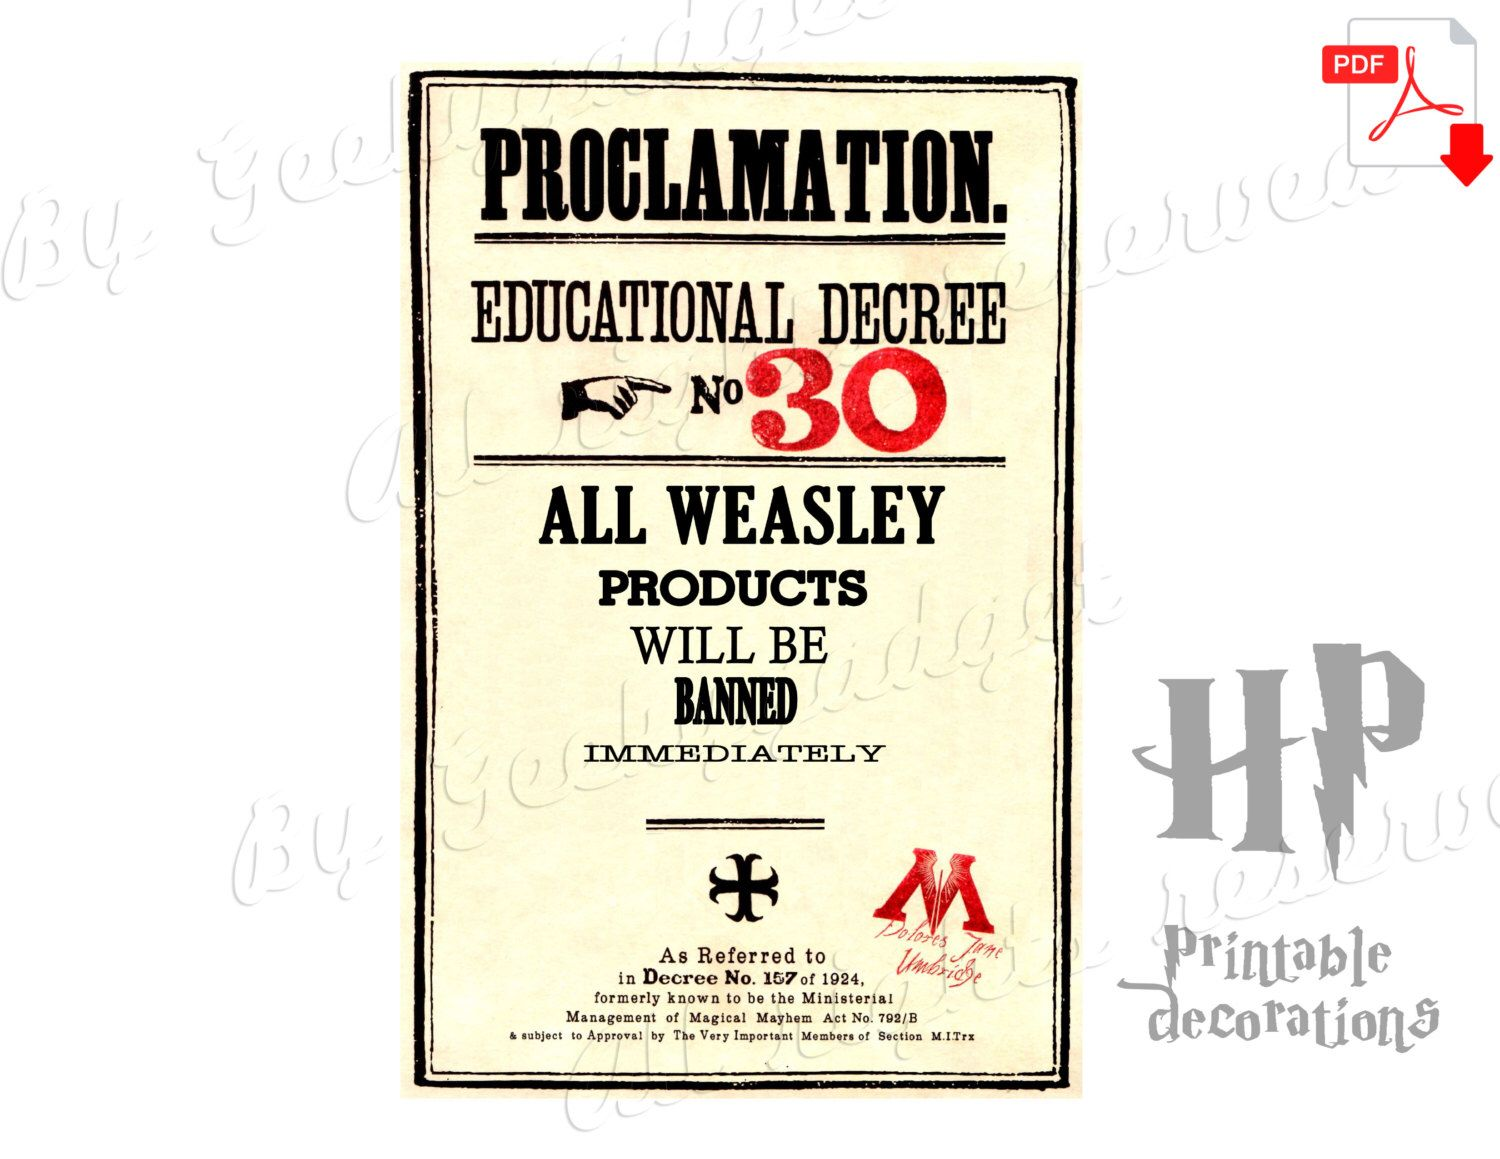 Weasley products Educational Decree proclamation(#30 ...